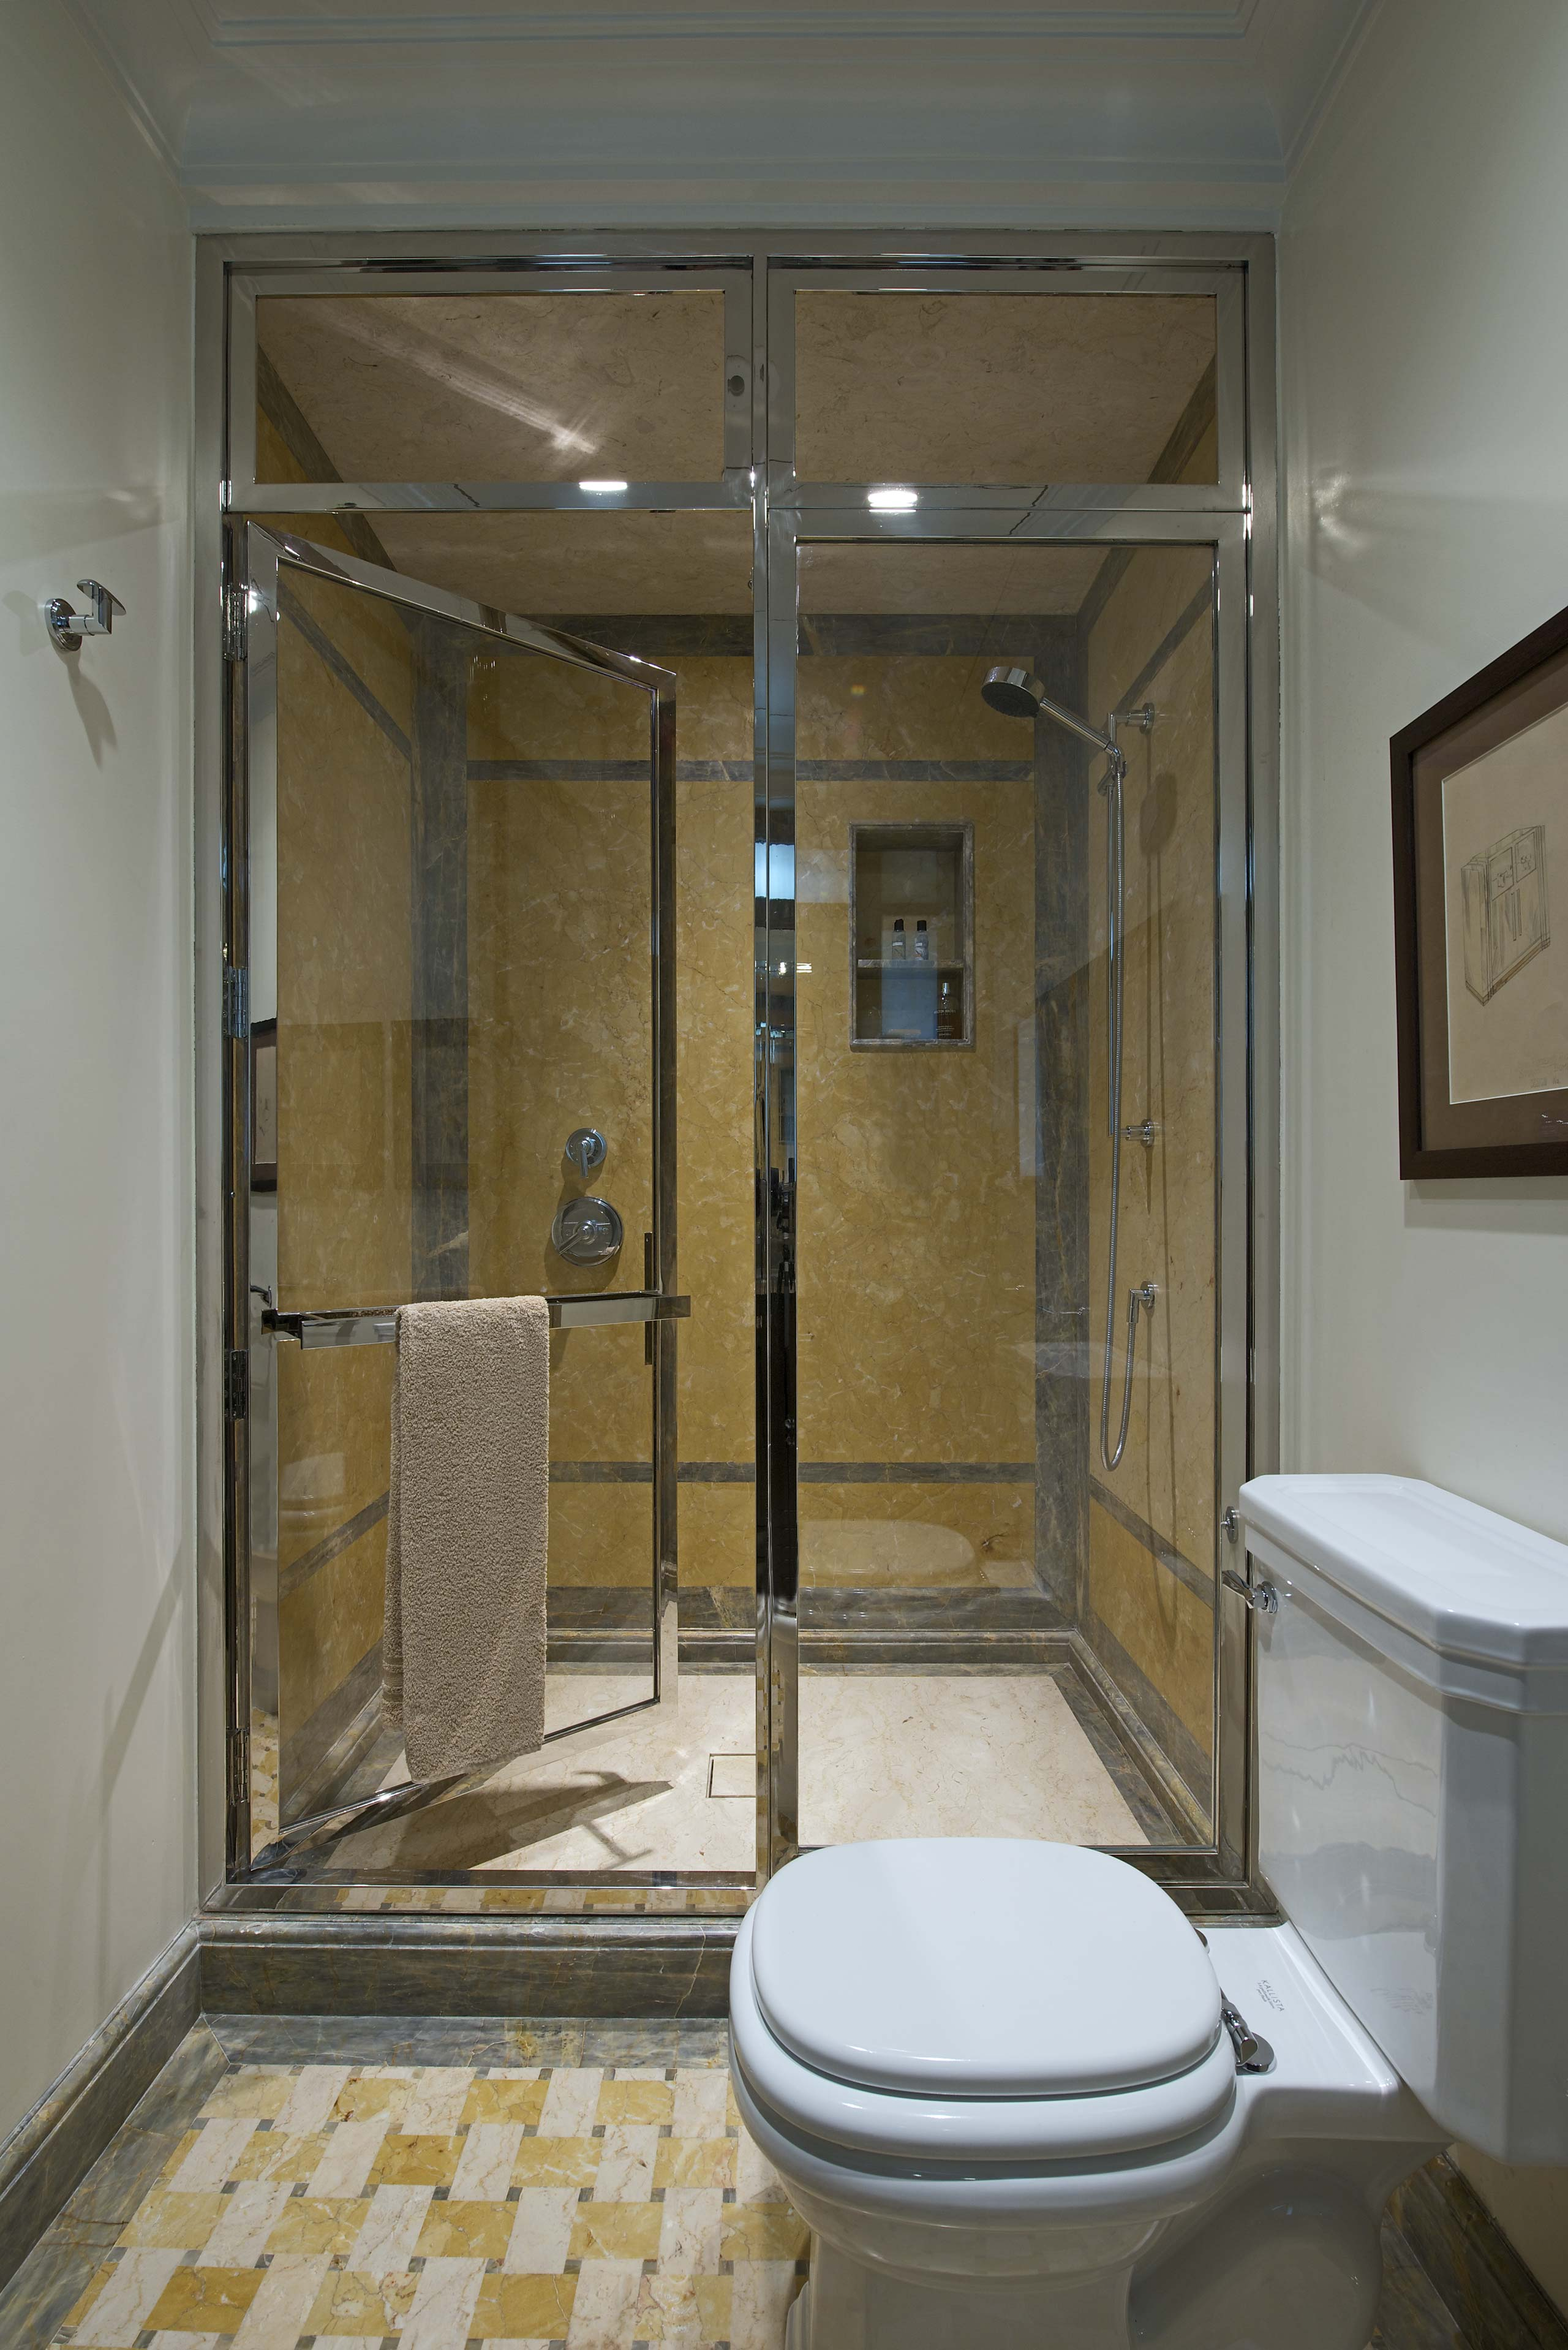 Bathroom in Marble and Glass Door at duplex apartment interior design mumbai india